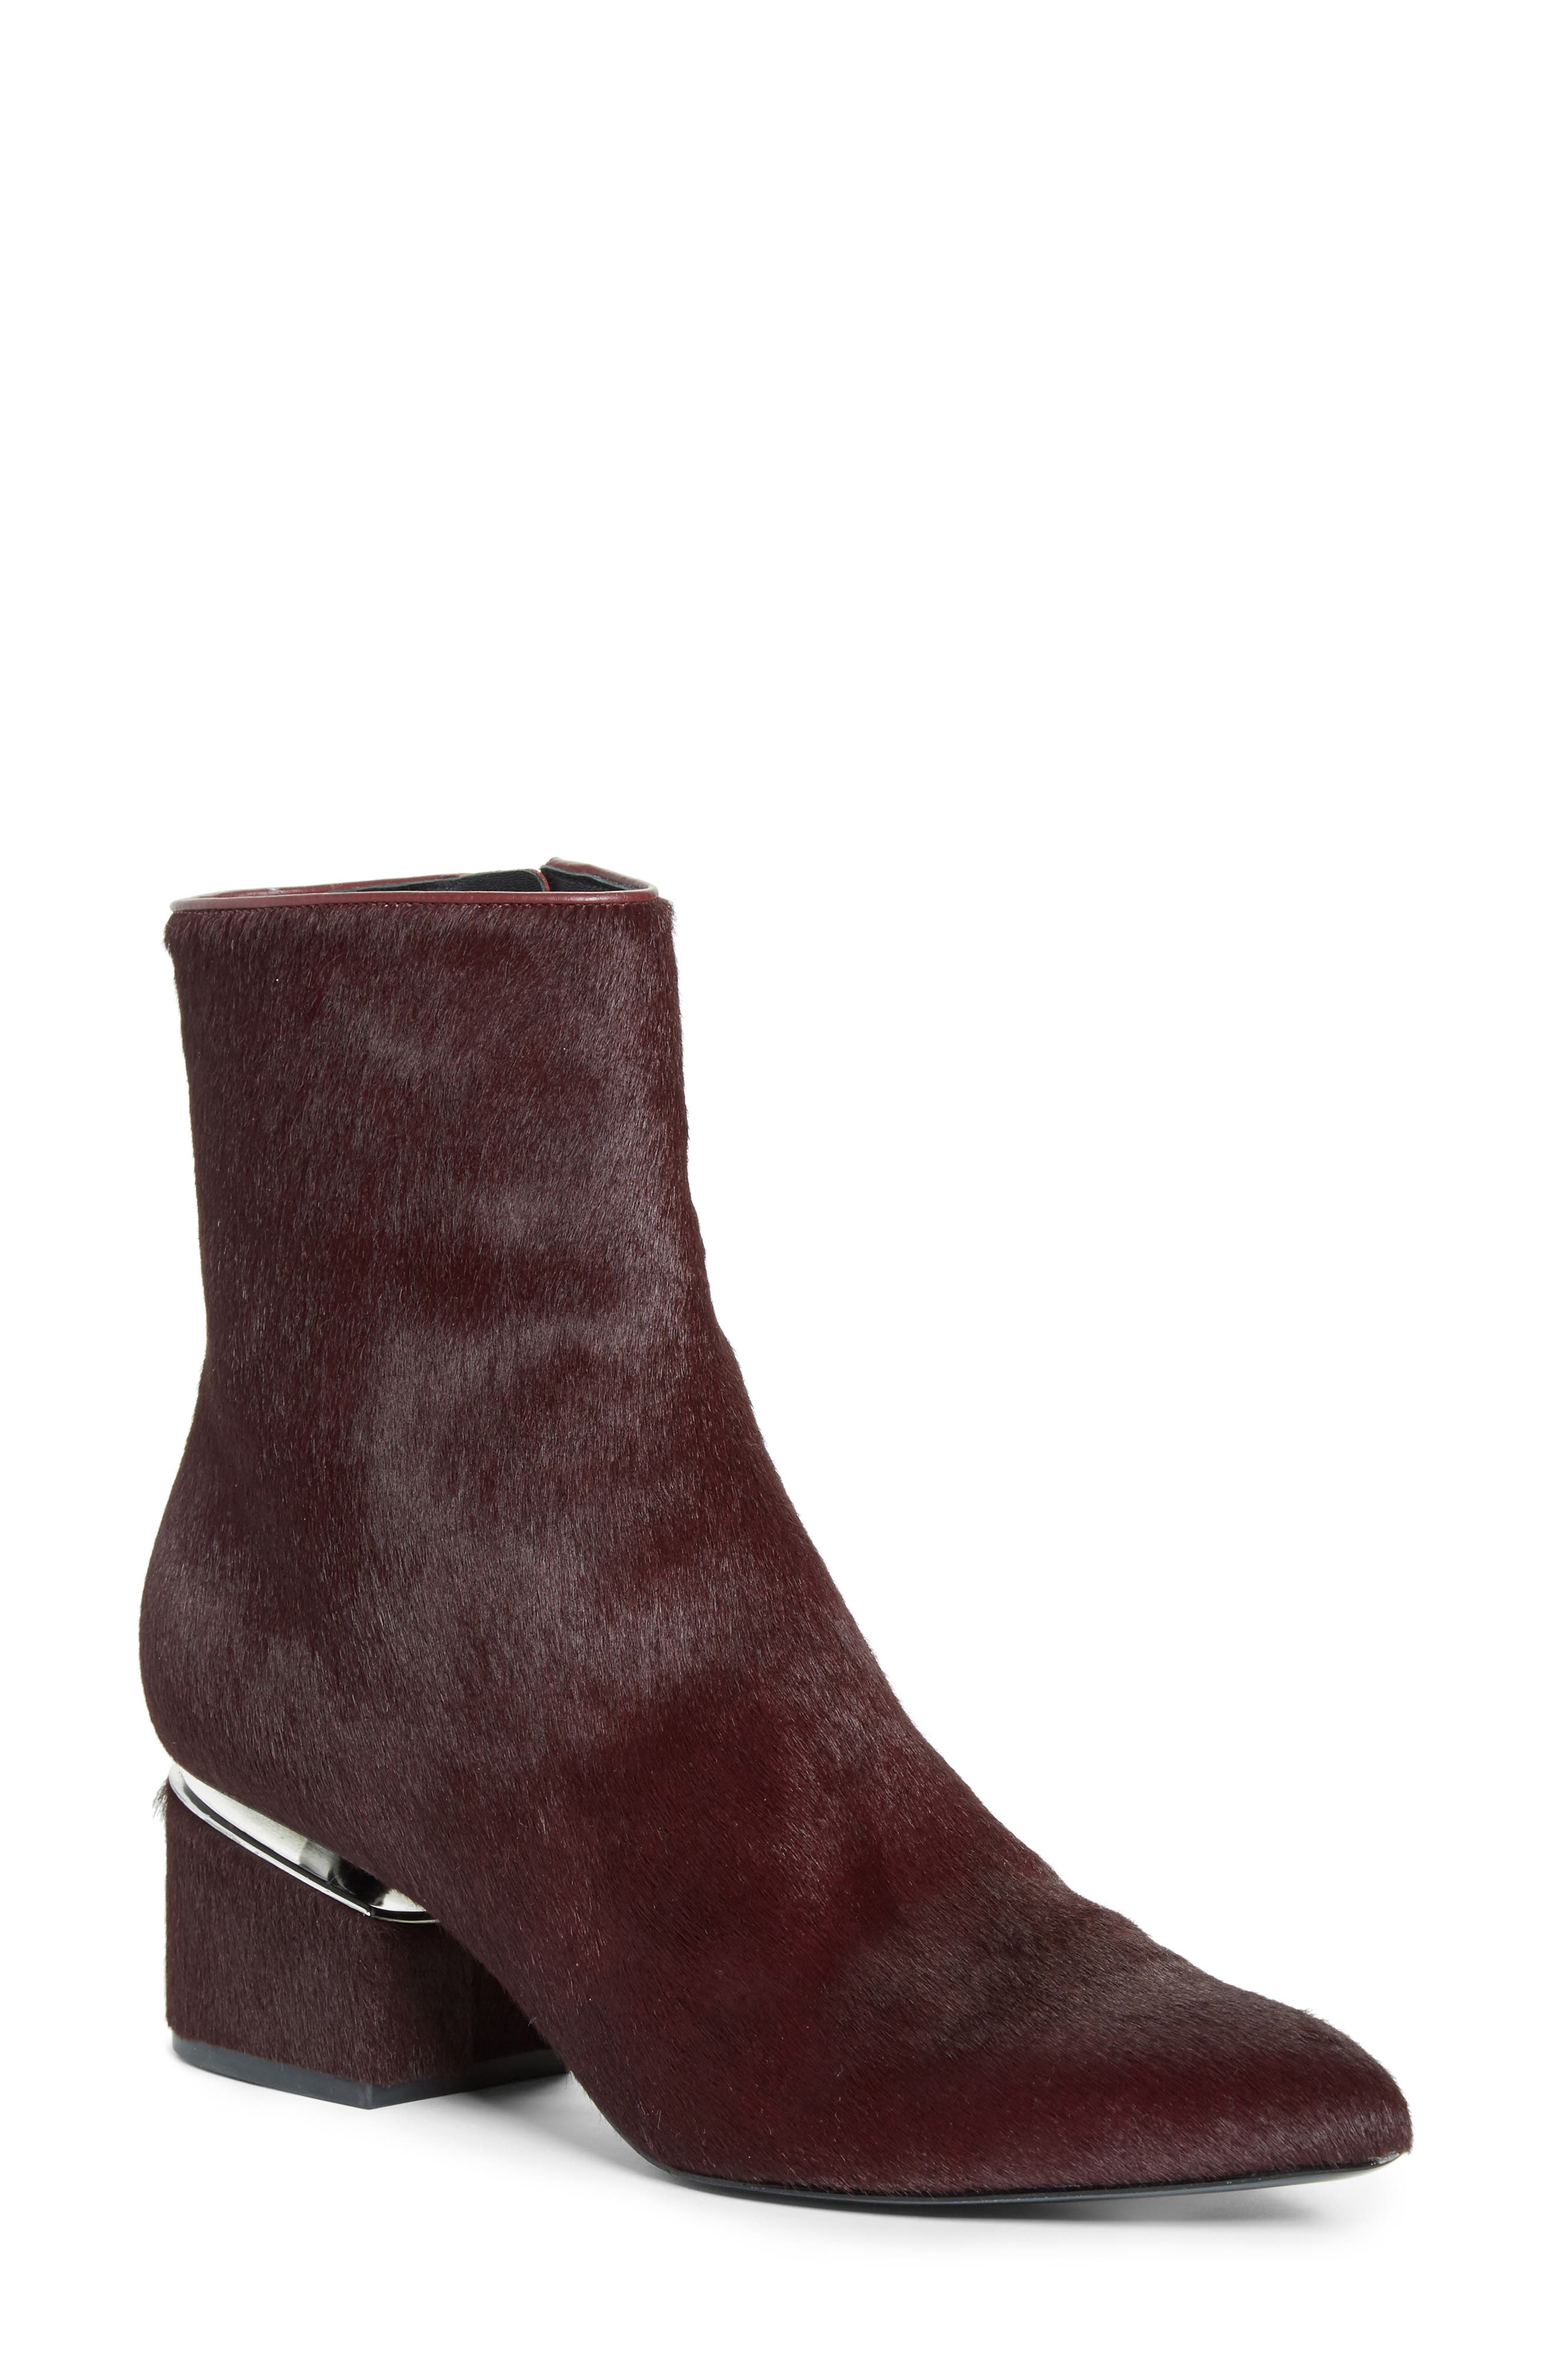 Jude Genuine Calf Hair Bootie,                             Main thumbnail 1, color,                             Burgundy Leather